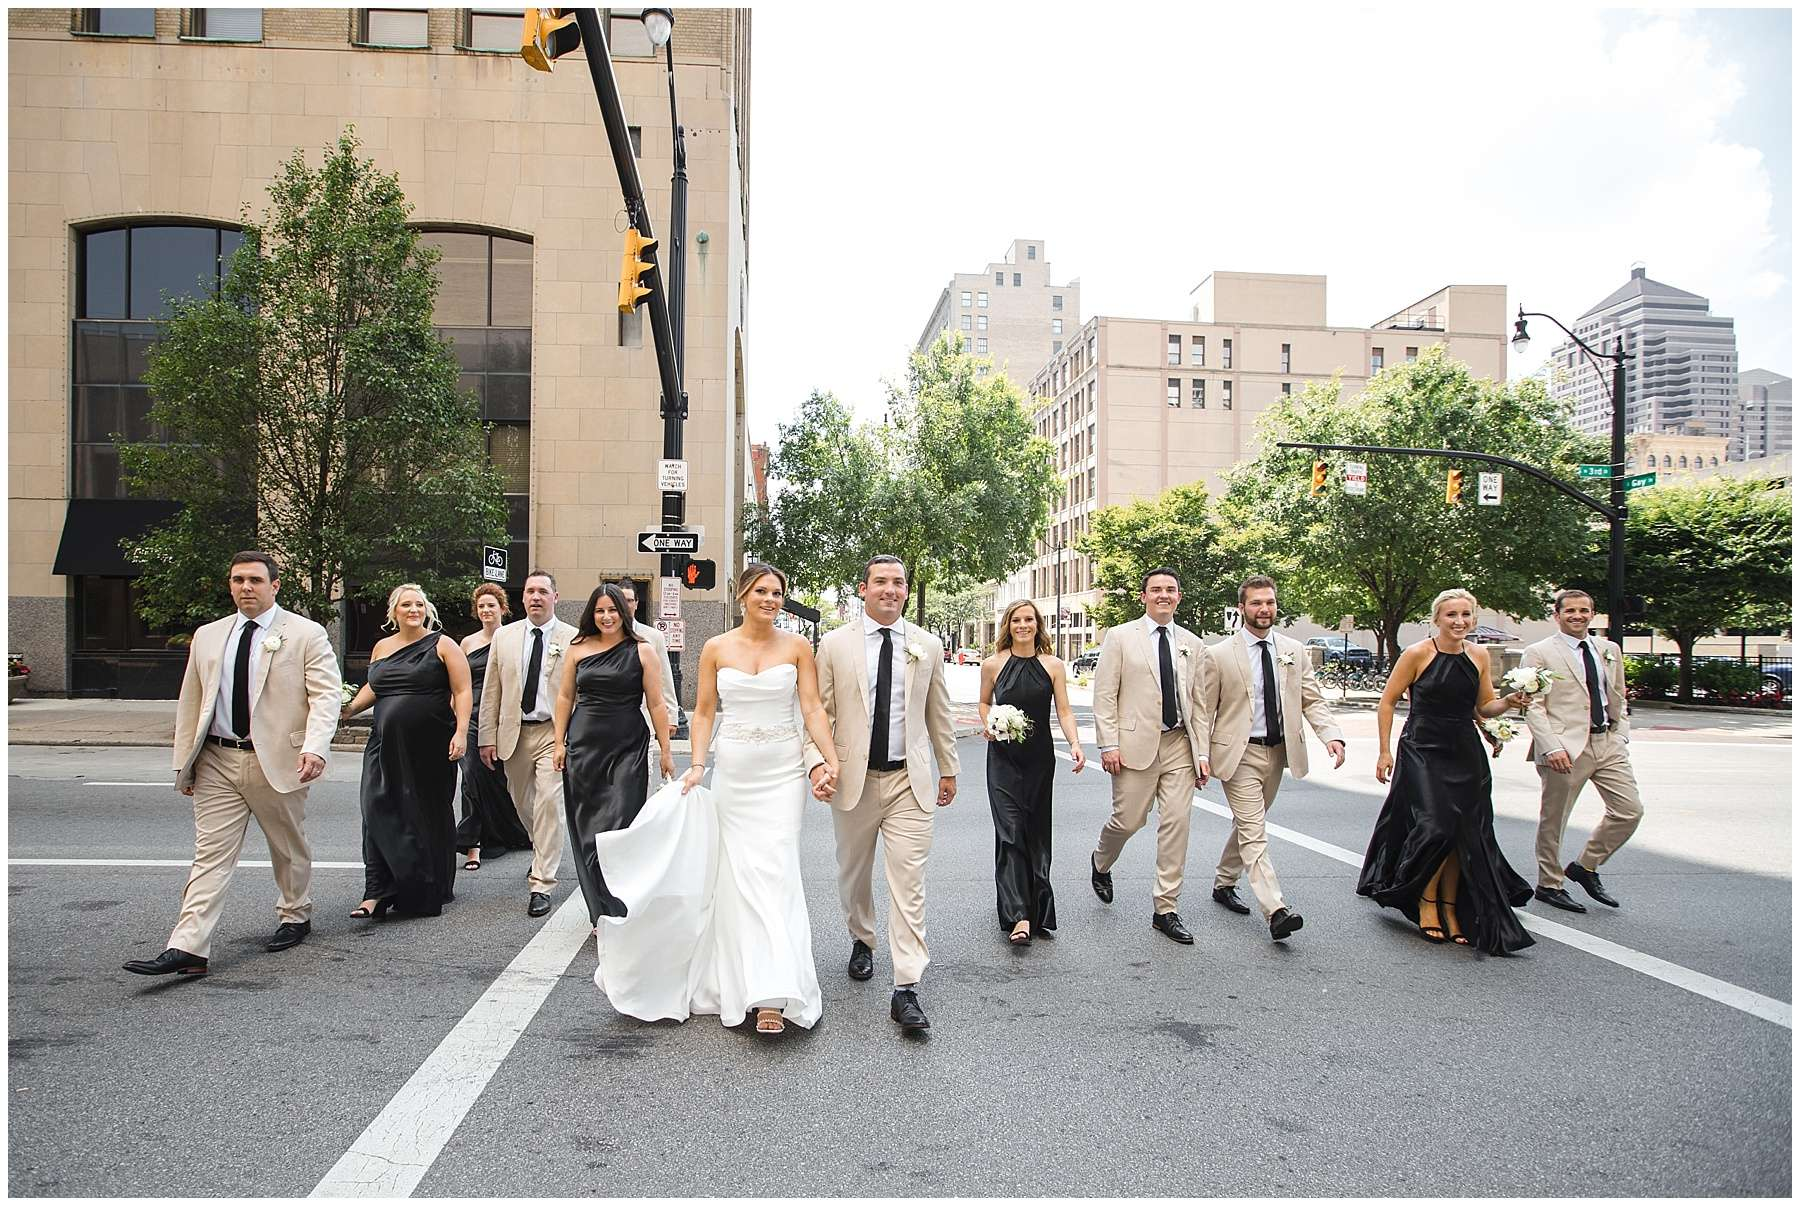 a large group of men and women wearing khaki suits and long black dresses cross a street in a downtown urban area